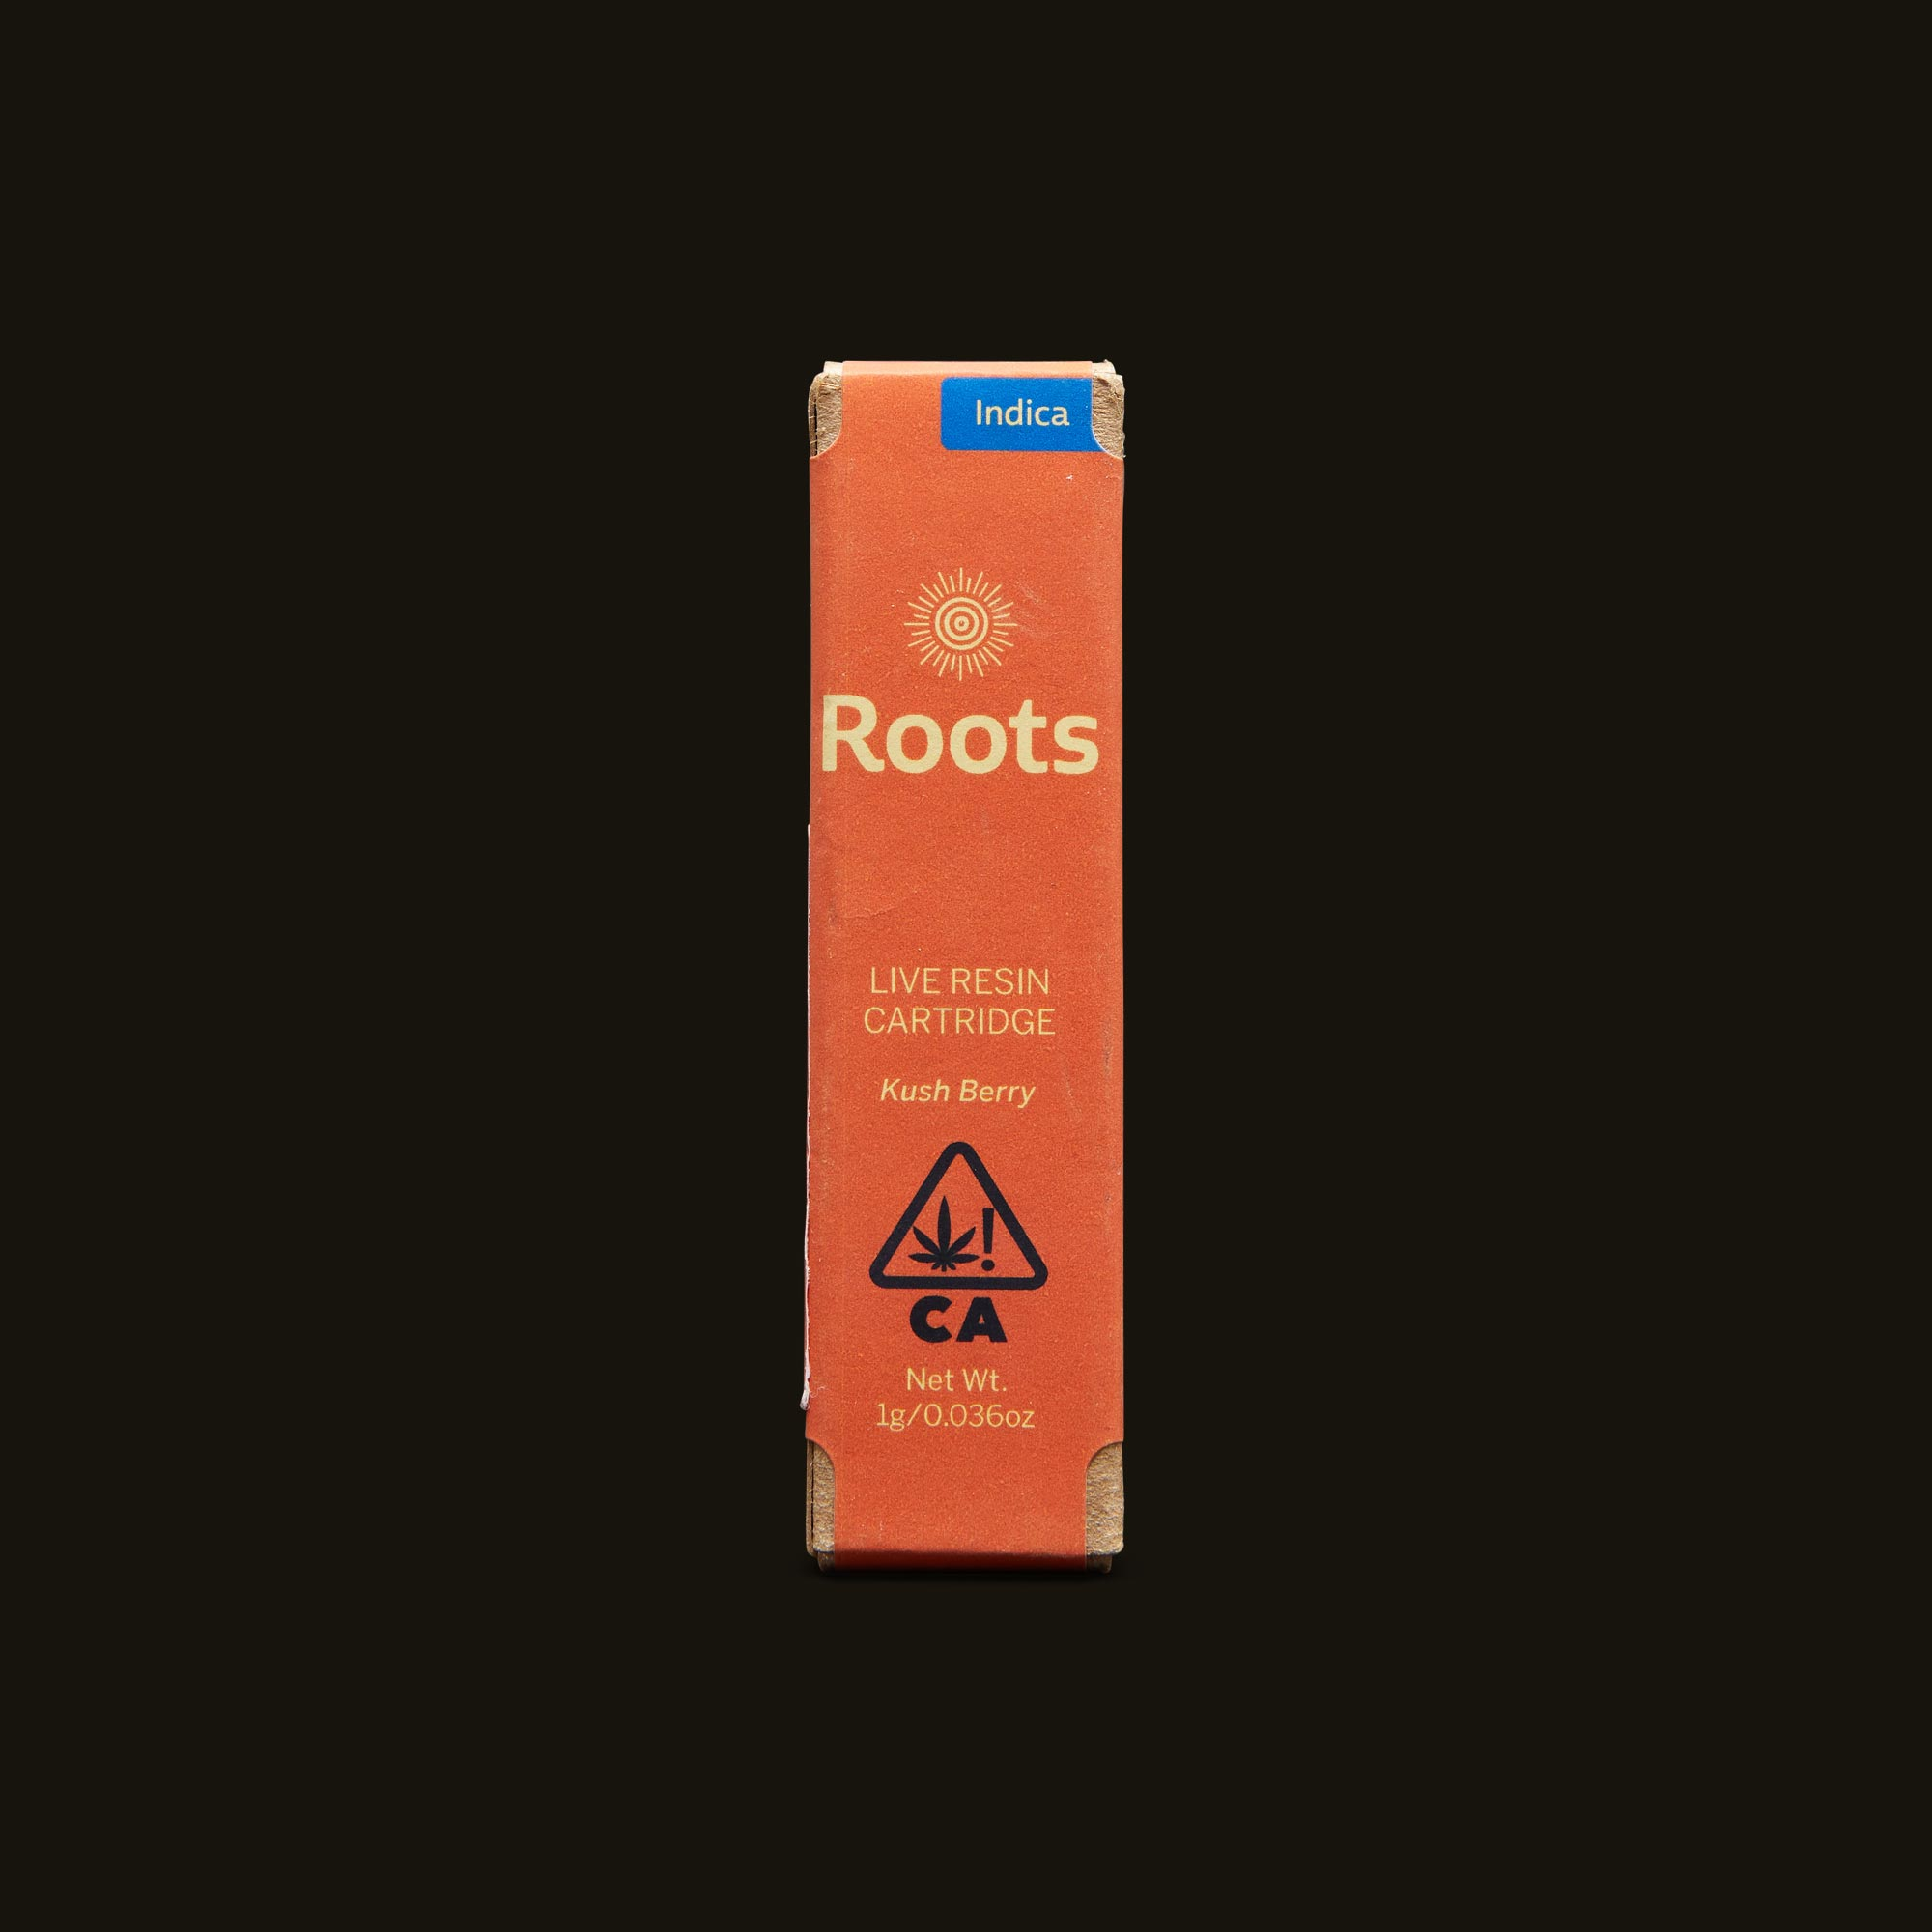 Roots Kush Berry Live Resin Cartridge Front Packaging